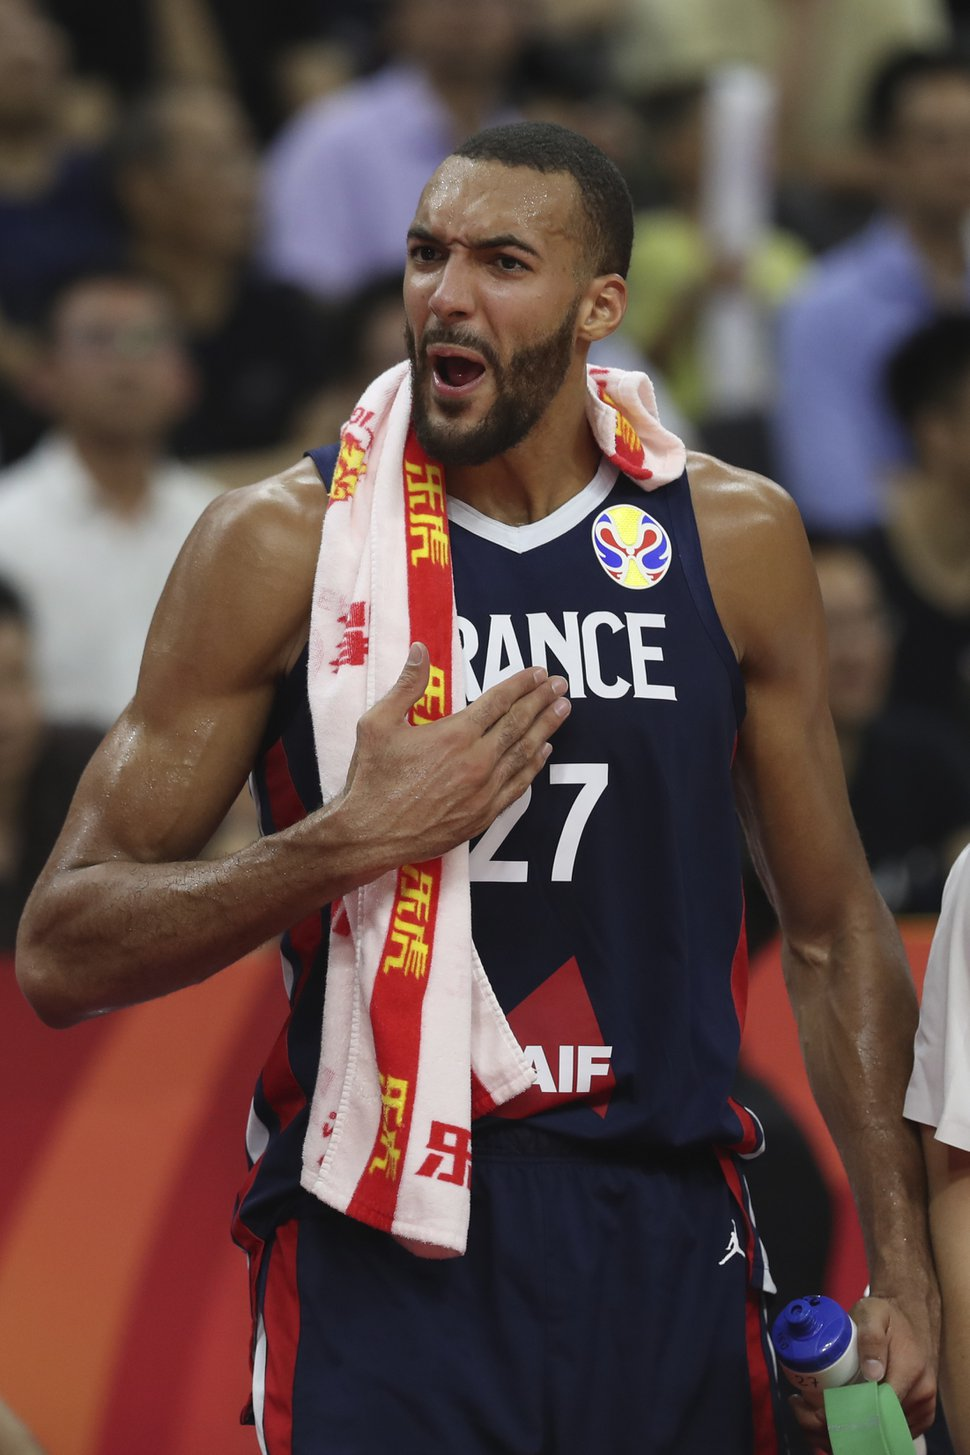 (Ng Han Guan | AP Photo) France's Rudy Gobert reacts during a quarterfinal match against United States for the FIBA Basketball World Cup in Dongguan in southern China's Guangdong province on Wednesday, Sept. 11, 2019. France defeated United States 89-79.